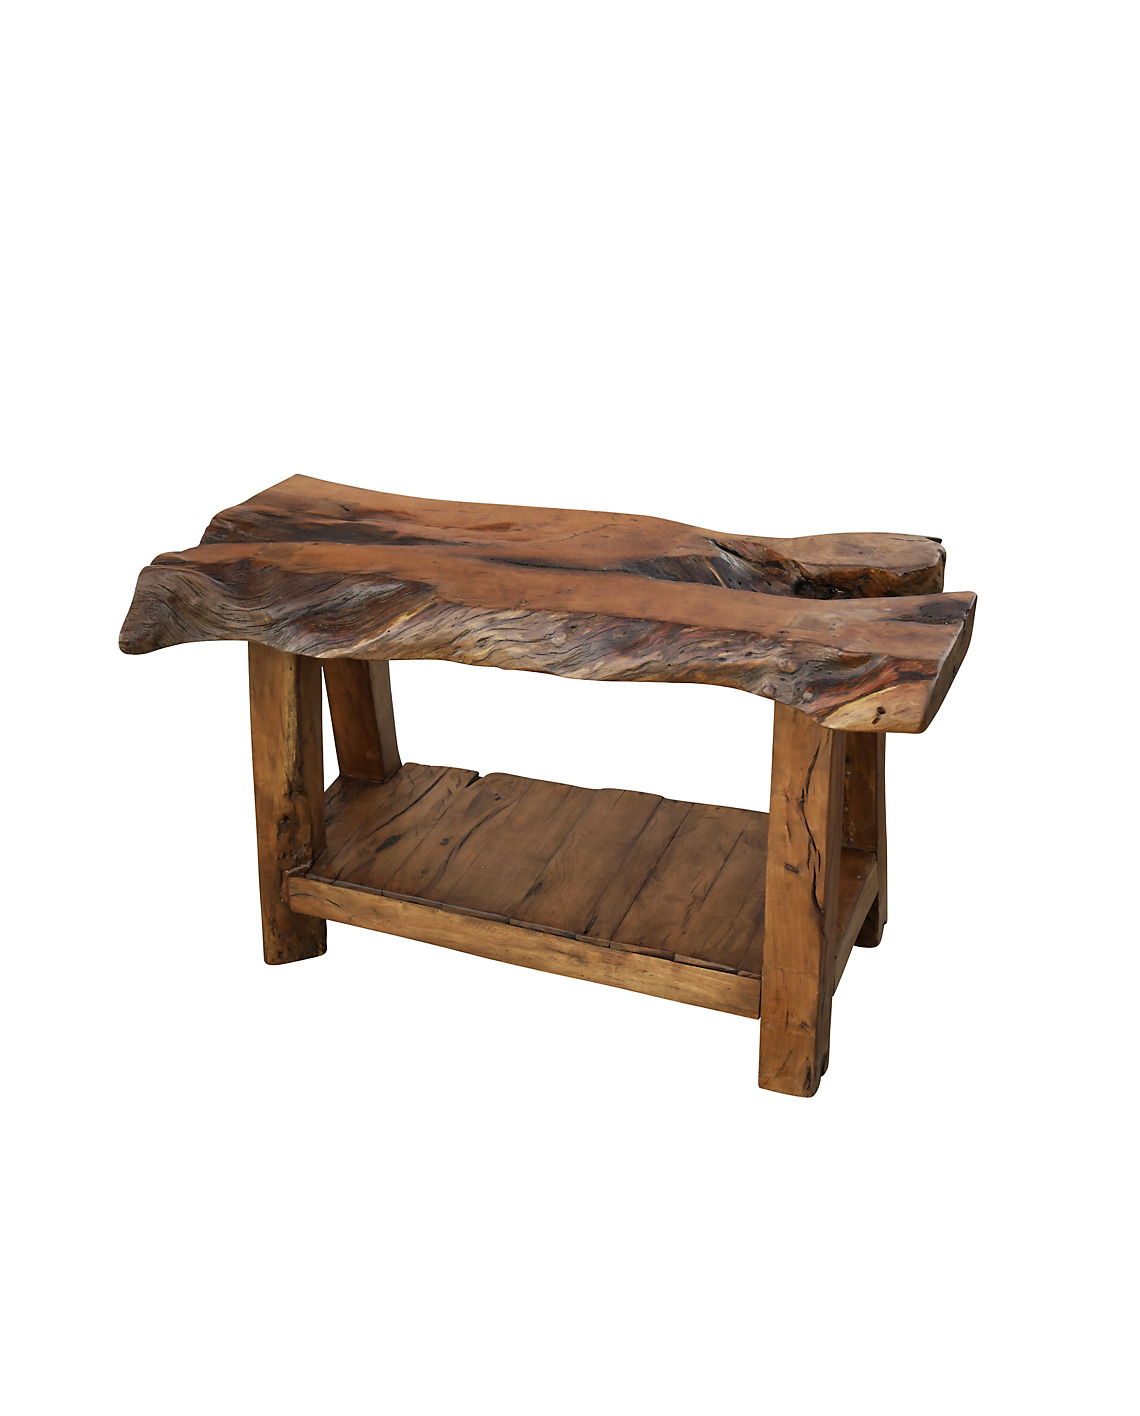 Sofa Table Set Up Heritage Rustic Sofa Table Luxury Rustic Furniture